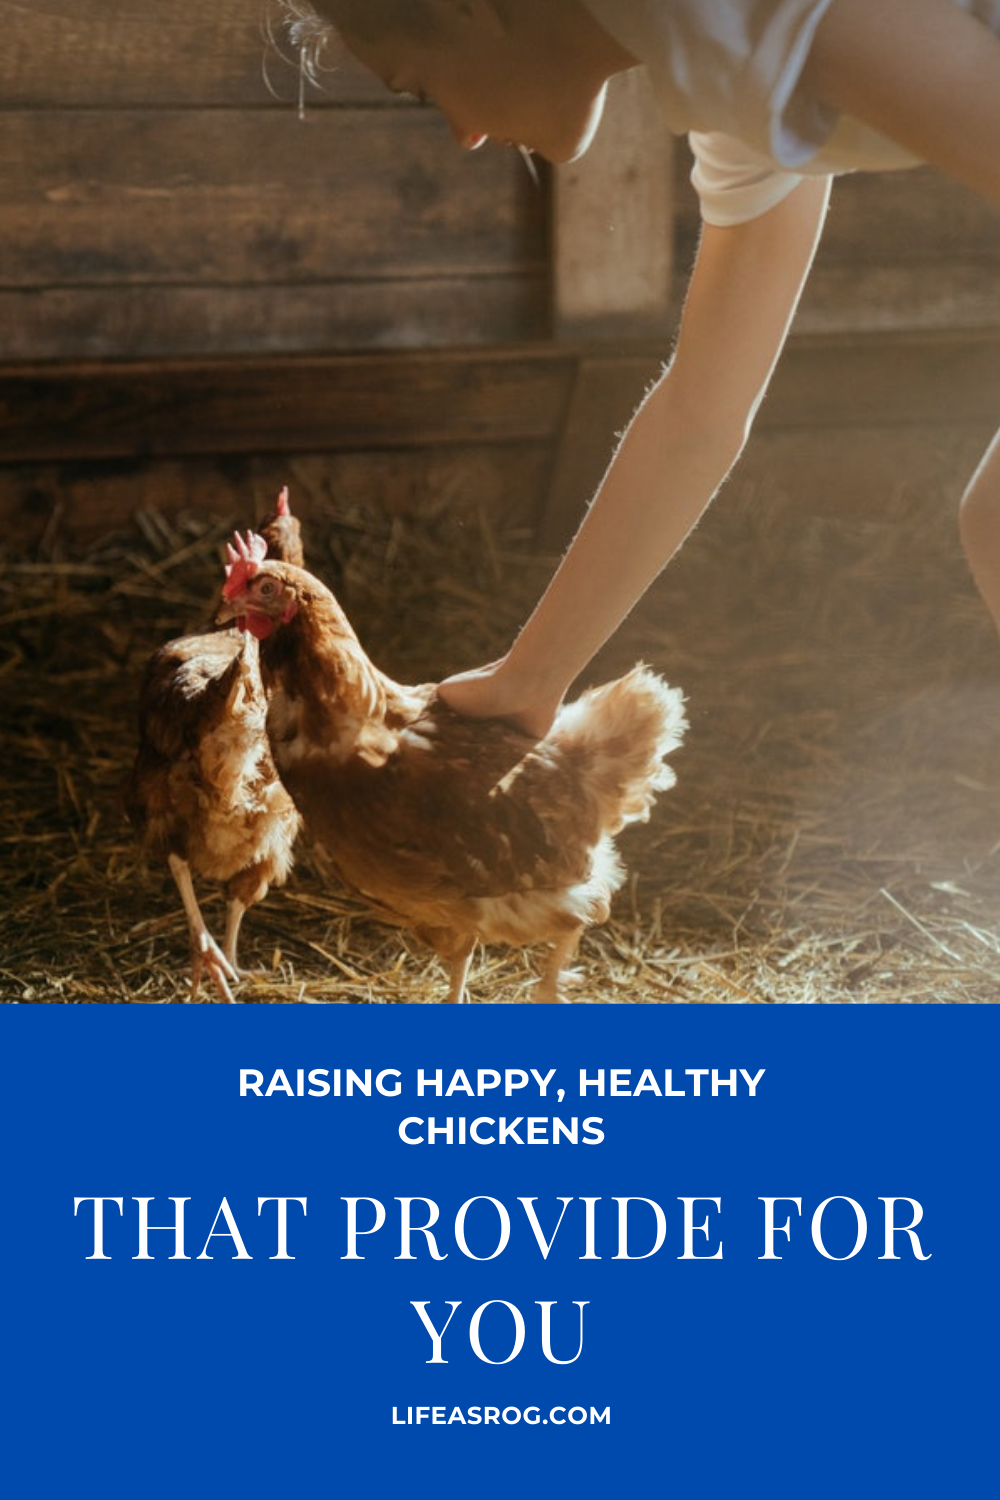 Raising Happy, Healthy Chickens That Provide for You